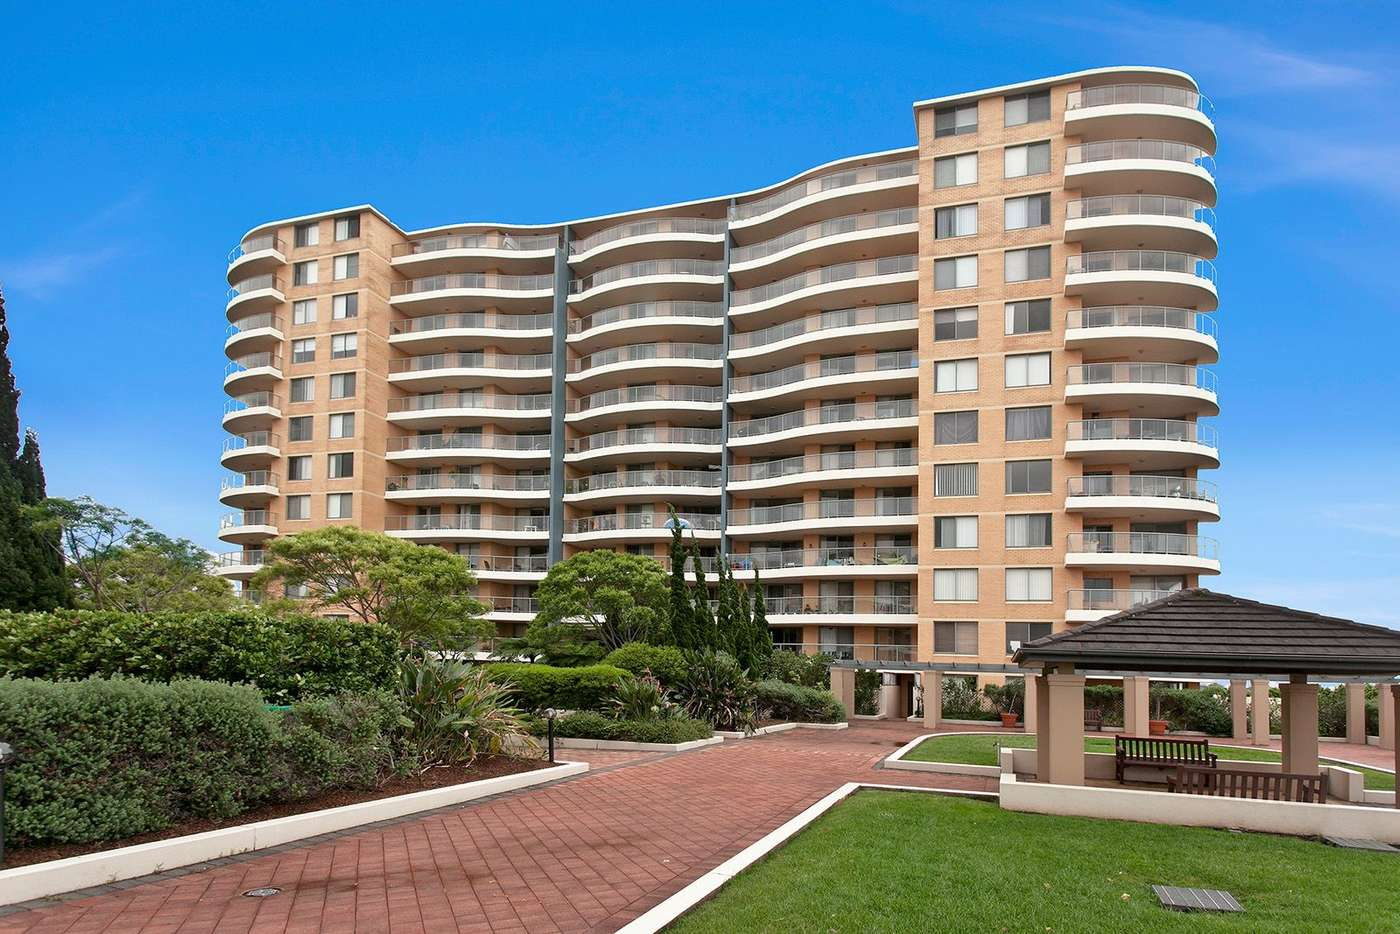 Main view of Homely apartment listing, 606/5 Rockdale Plaza Drive, Rockdale NSW 2216